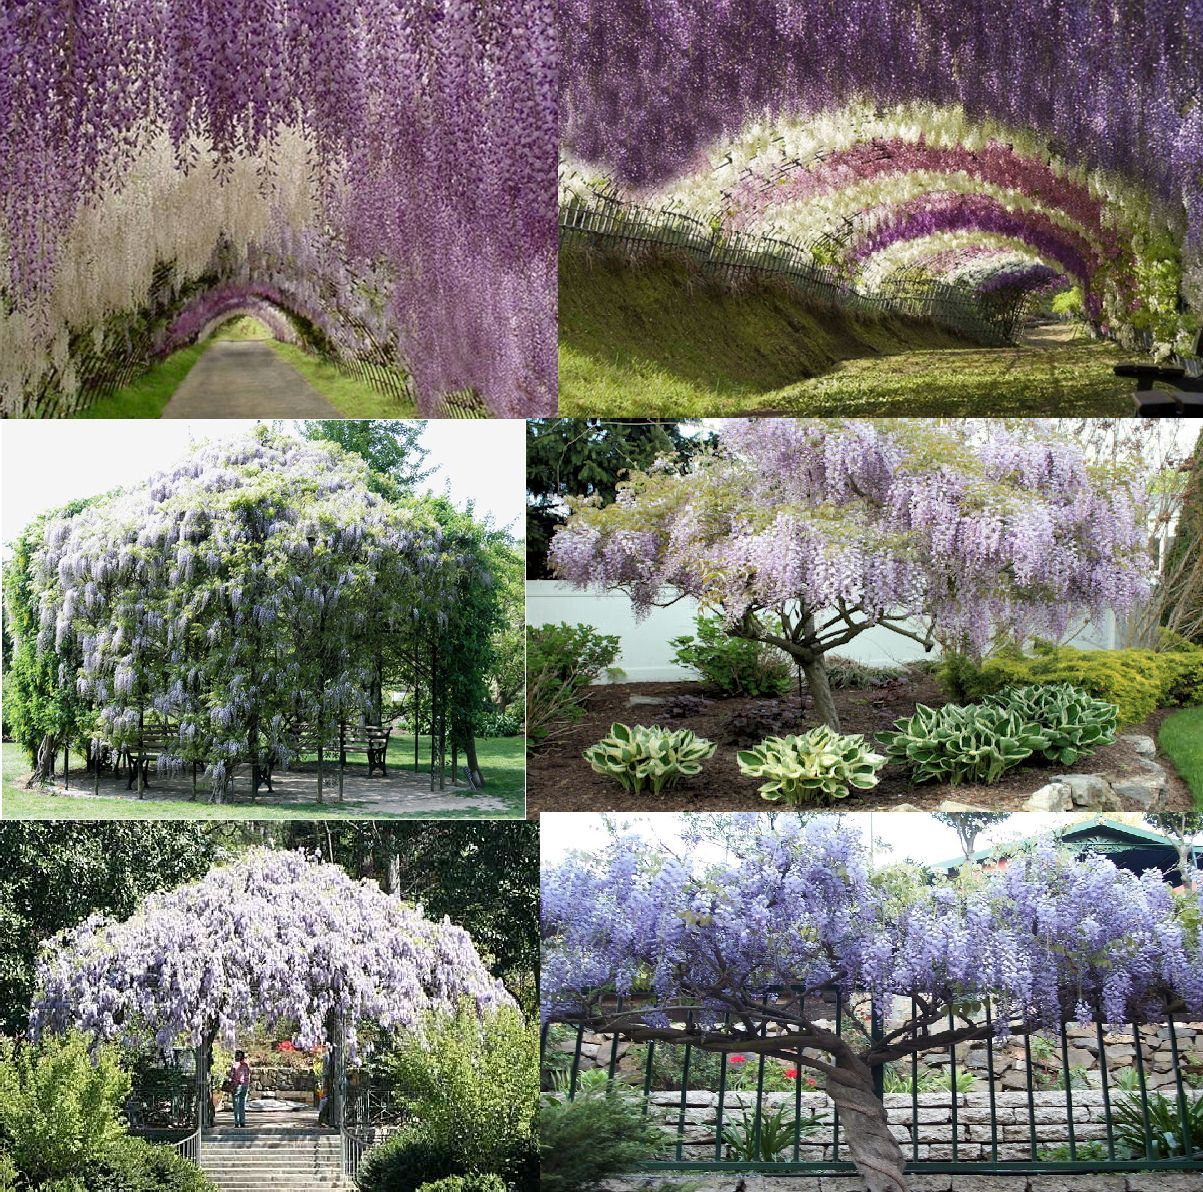 Chinese Wisteria Sinensis Zone 3 9 Full Sun To Full Shade Prefers Sun Any Soil Water Prefers Moist Well Draine Growing Flowers Fragrant Flowers Wisteria